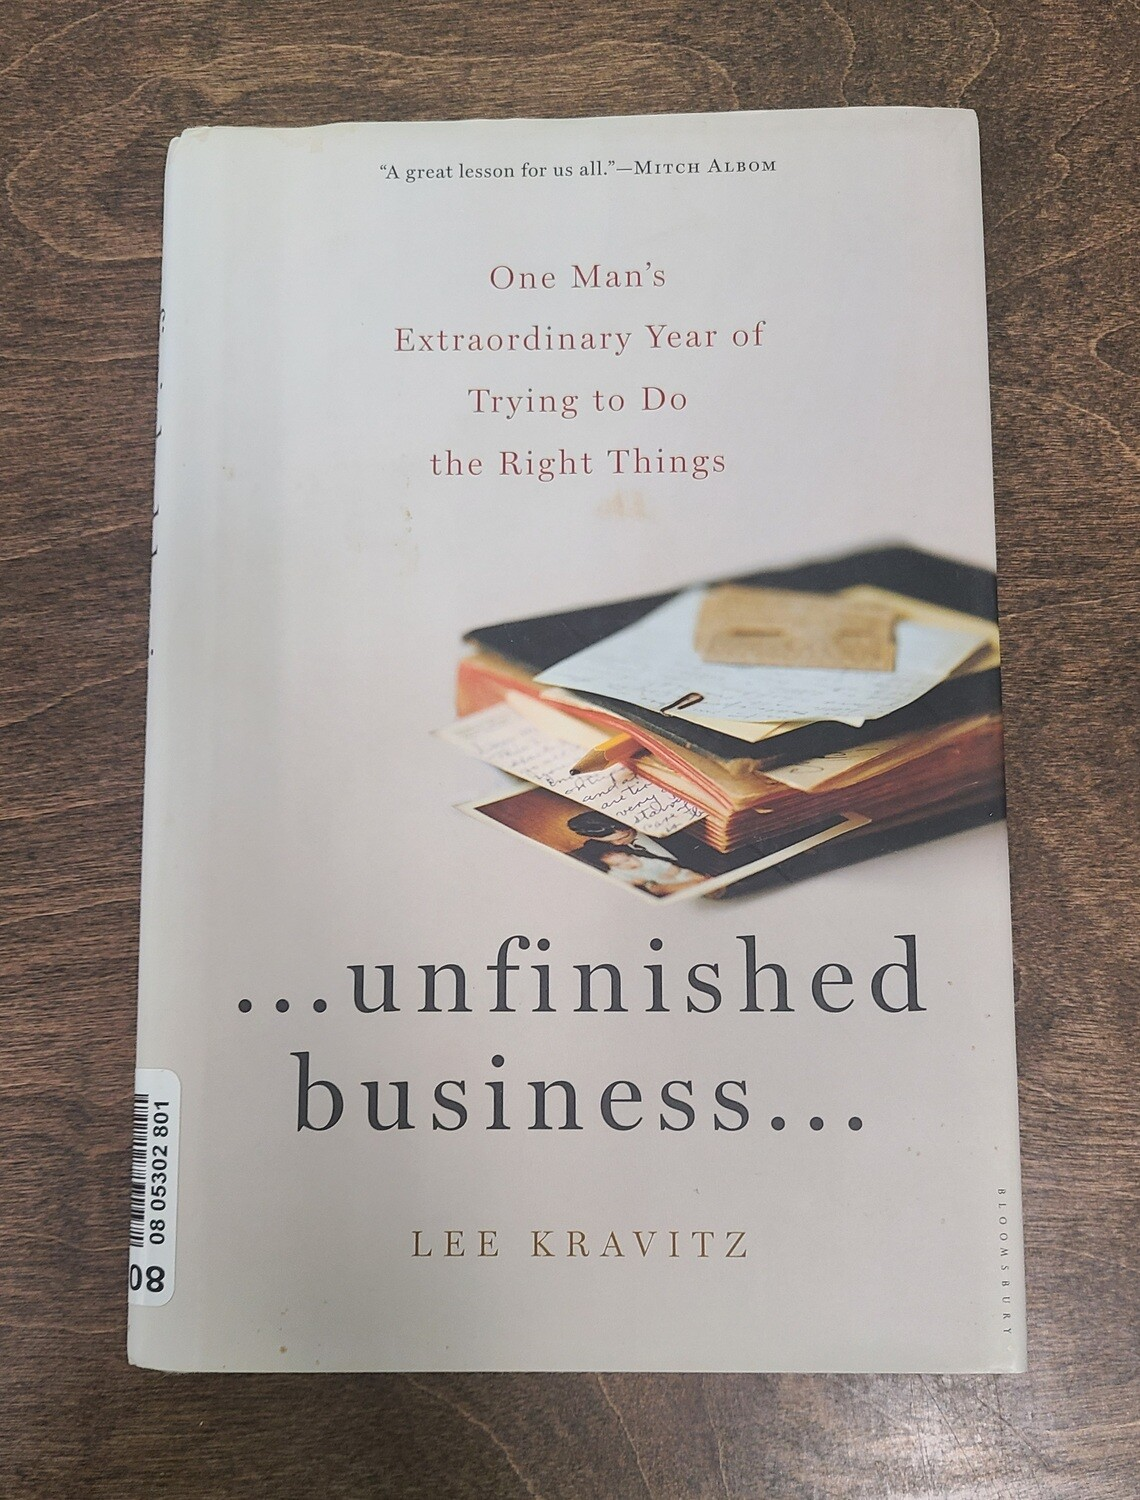 …Unfinished Business... by Lee Kravitz